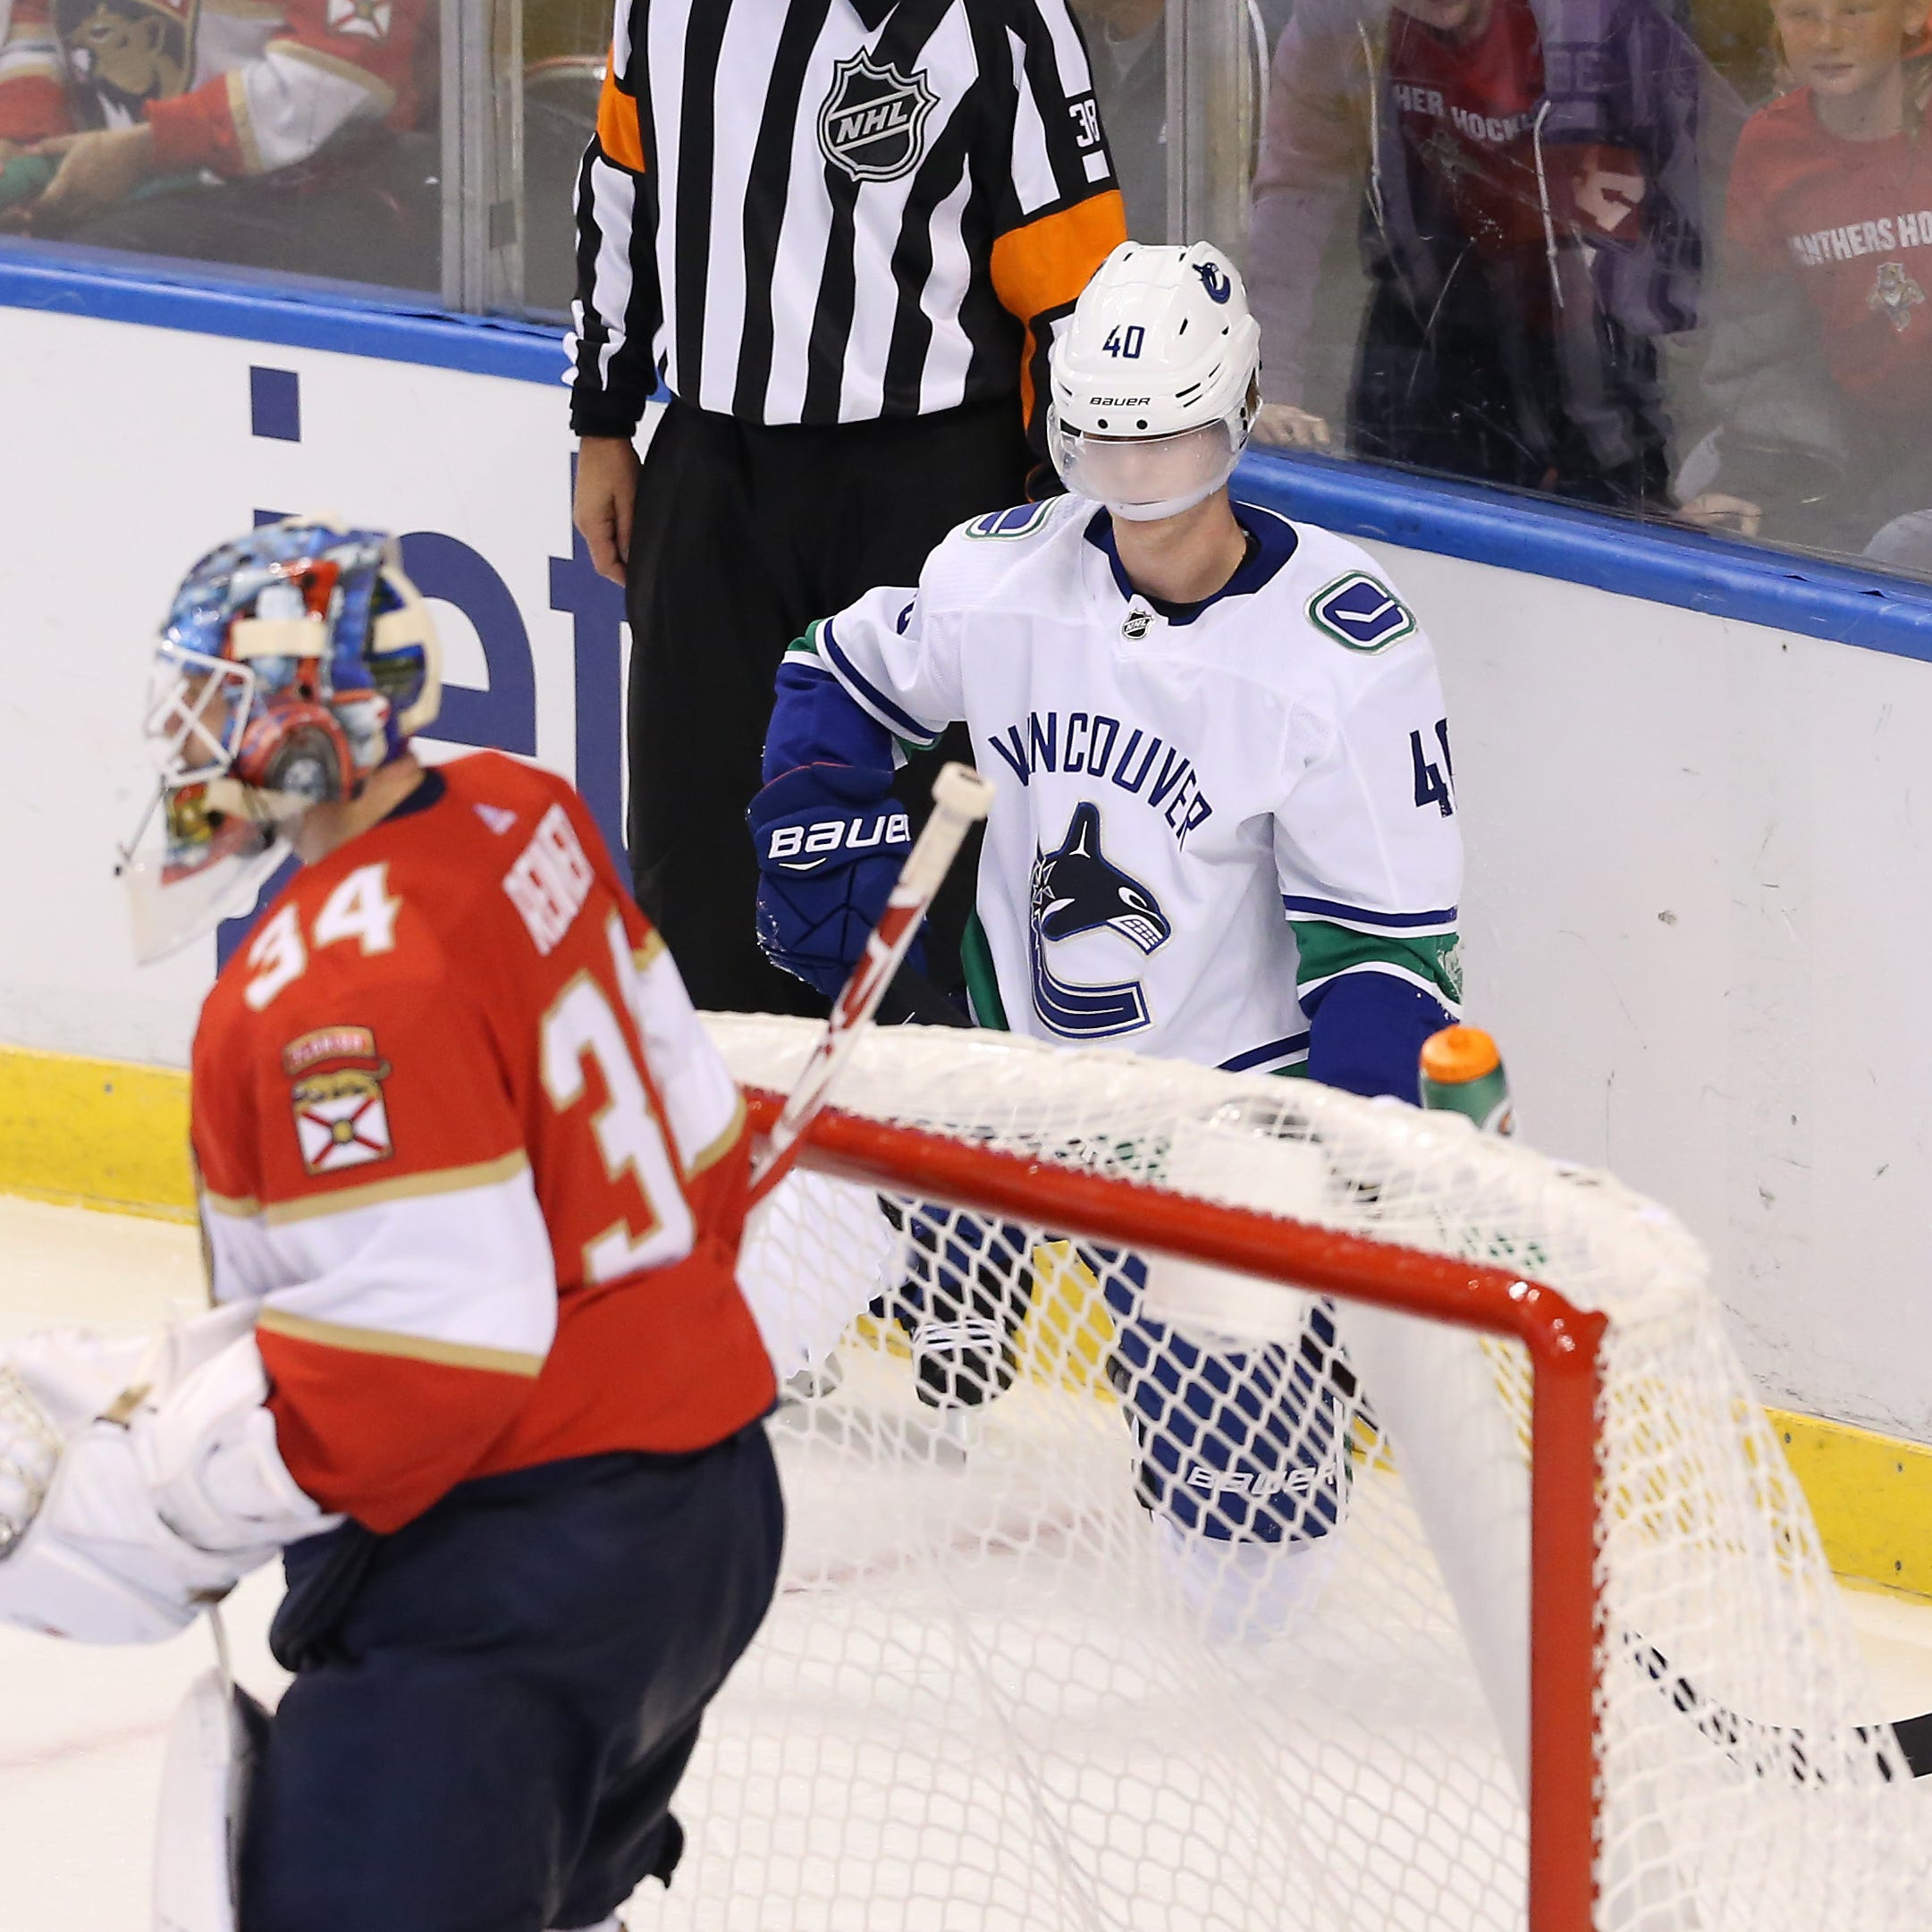 Canucks center Elias Pettersson tries to compose himself after a hard hit by Panthers defenseman Mike Matheson.